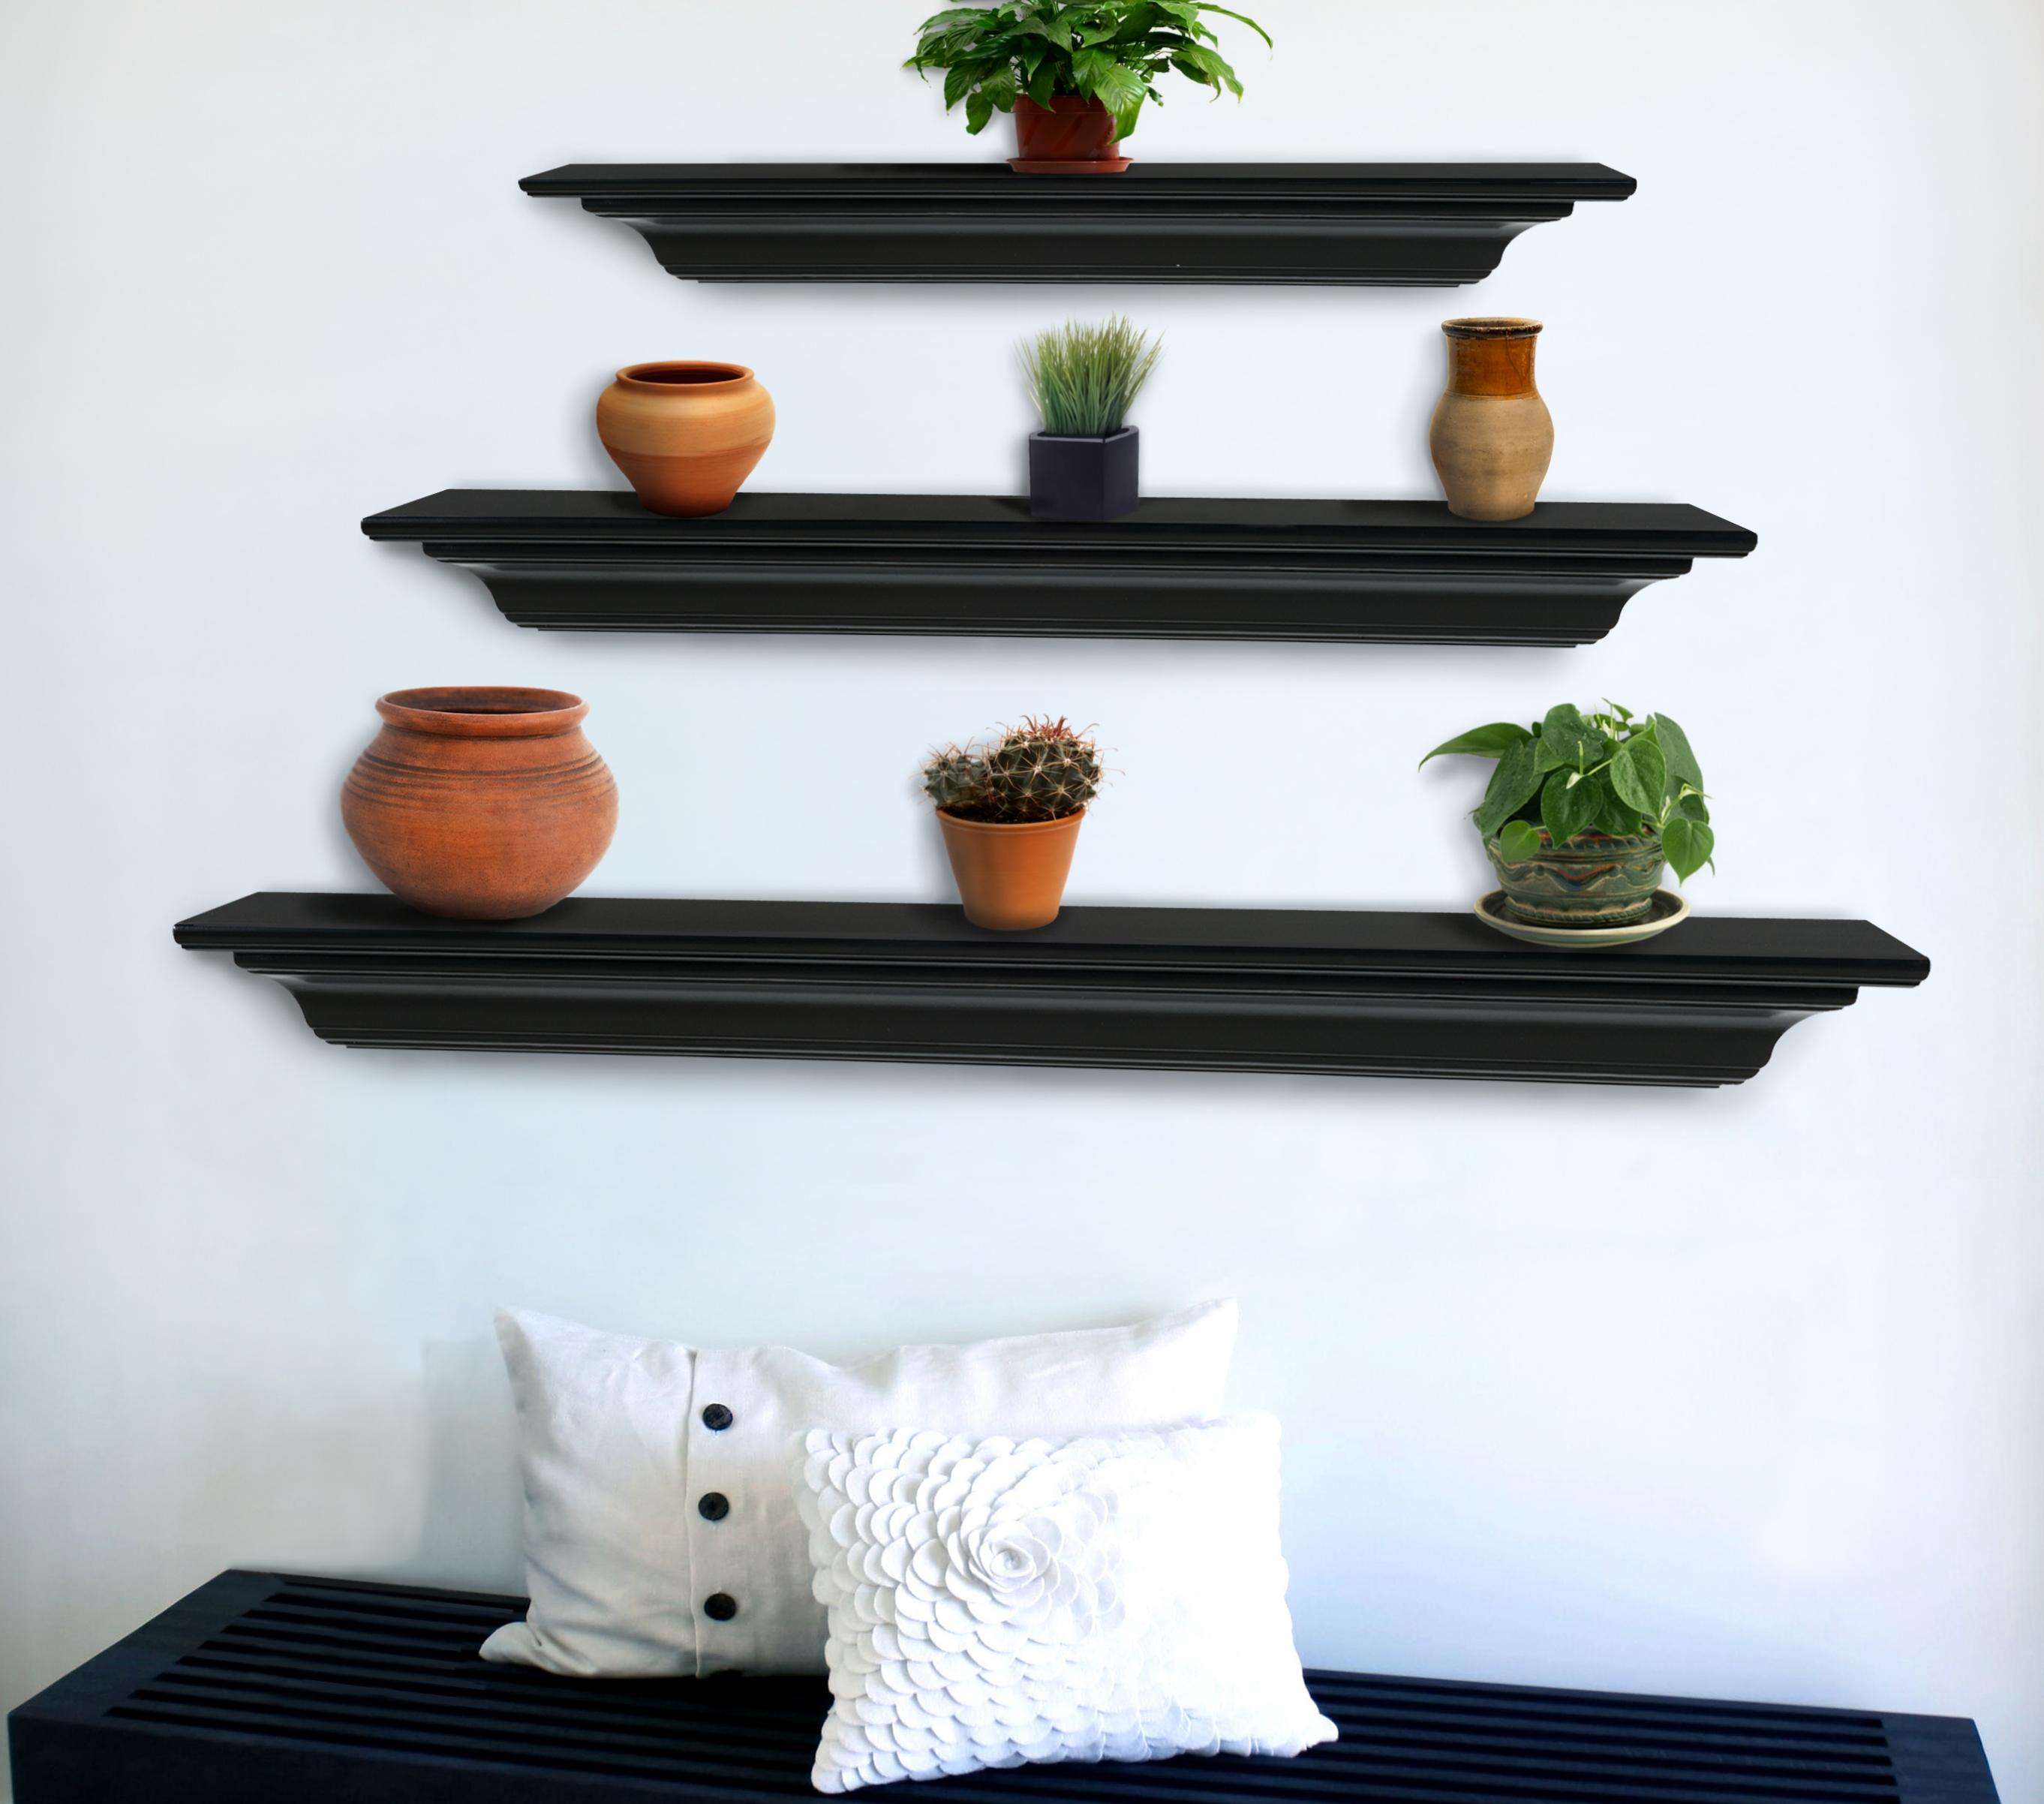 618-lifestyle-crestwood-black-paint-grouping-over-bench.jpg